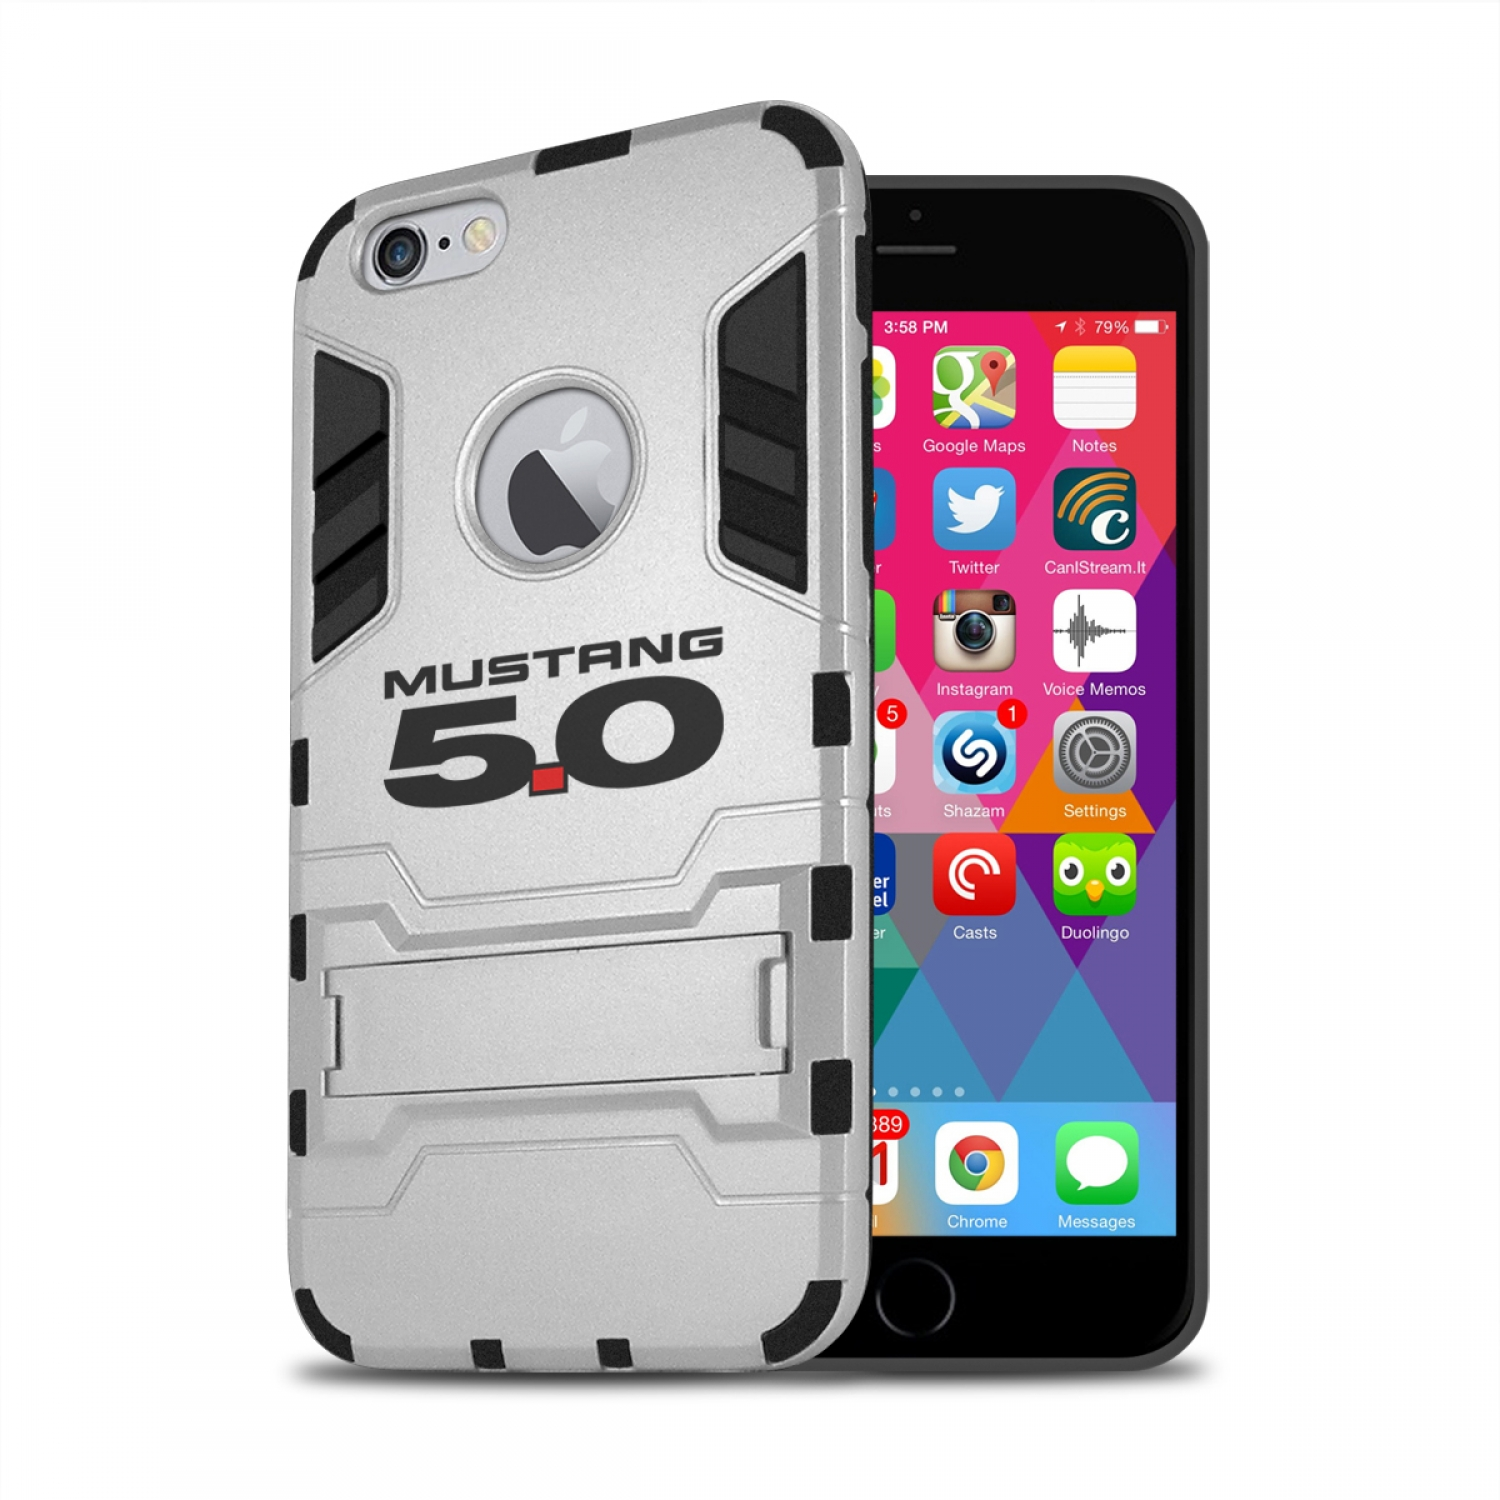 Ford Mustang 5.0 iPhone 6 6s Shockproof TPU ABS Hybrid Silver Phone Case